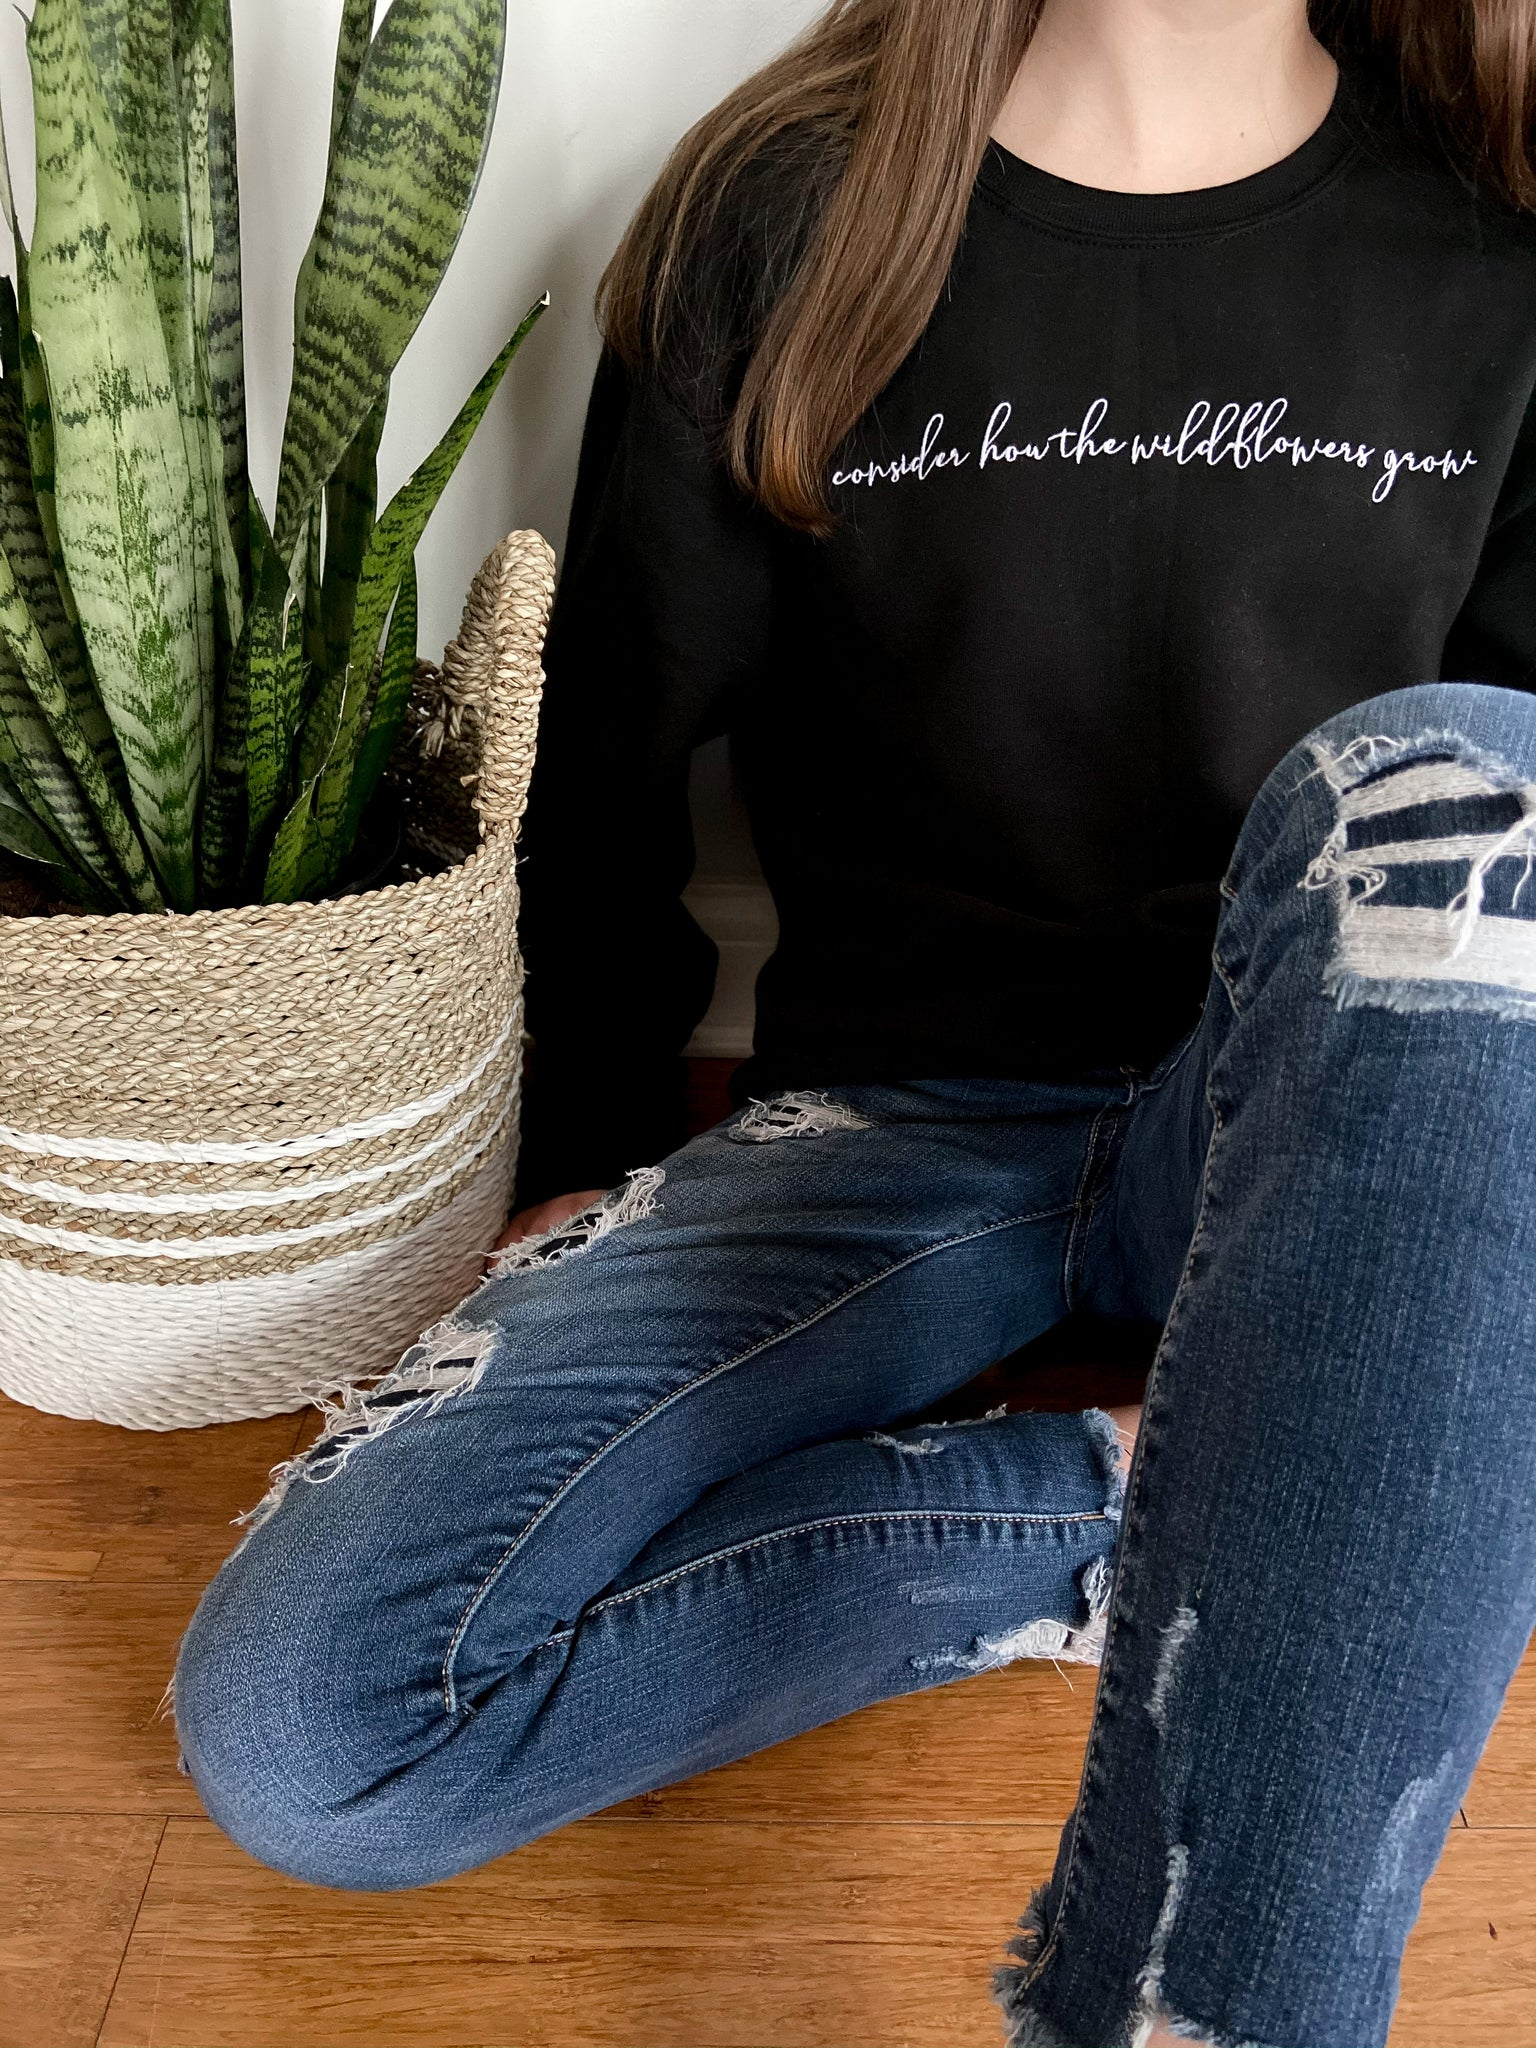 Consider how the Wildflowers Grow Sweatshirt